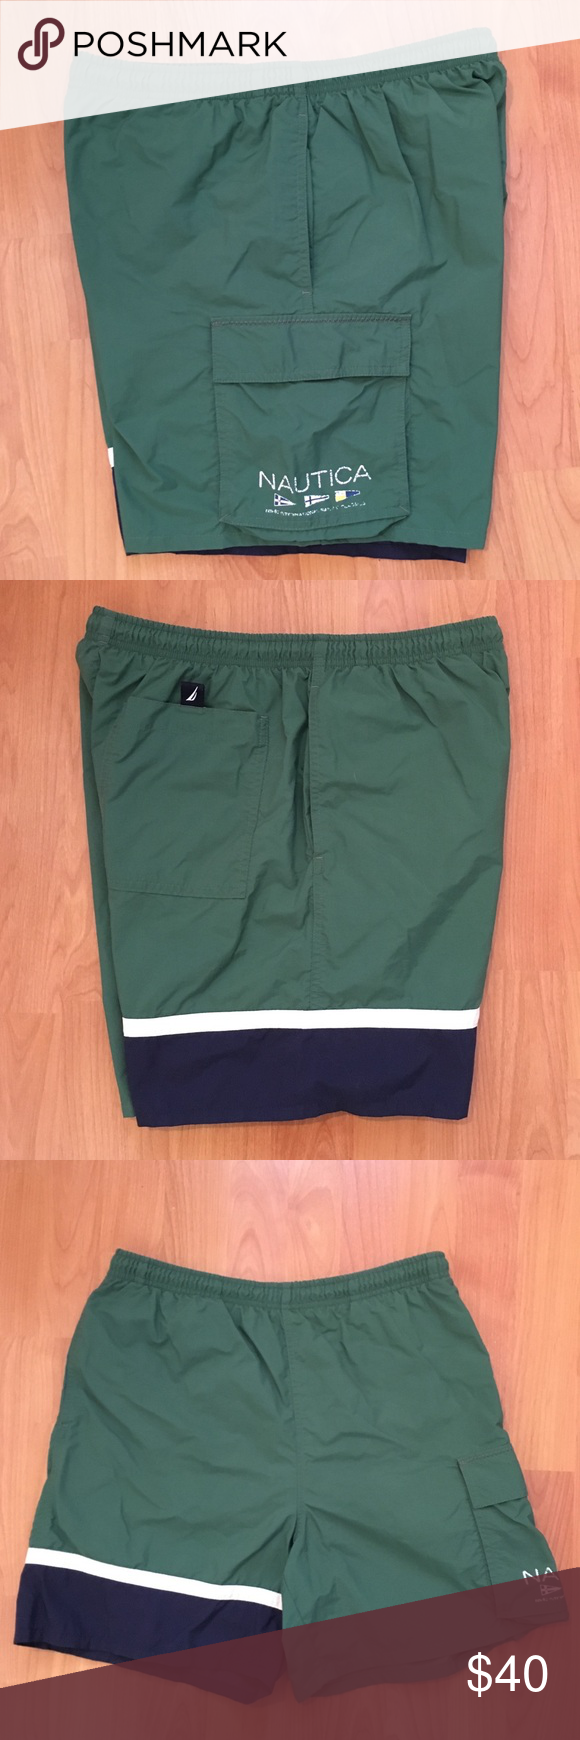 dcea11ec6c6d5 Vtg Nautica Men's Cargo Spell Out Swim Trunks S Vintage Nautica Men's Cargo Swim  Trunks.